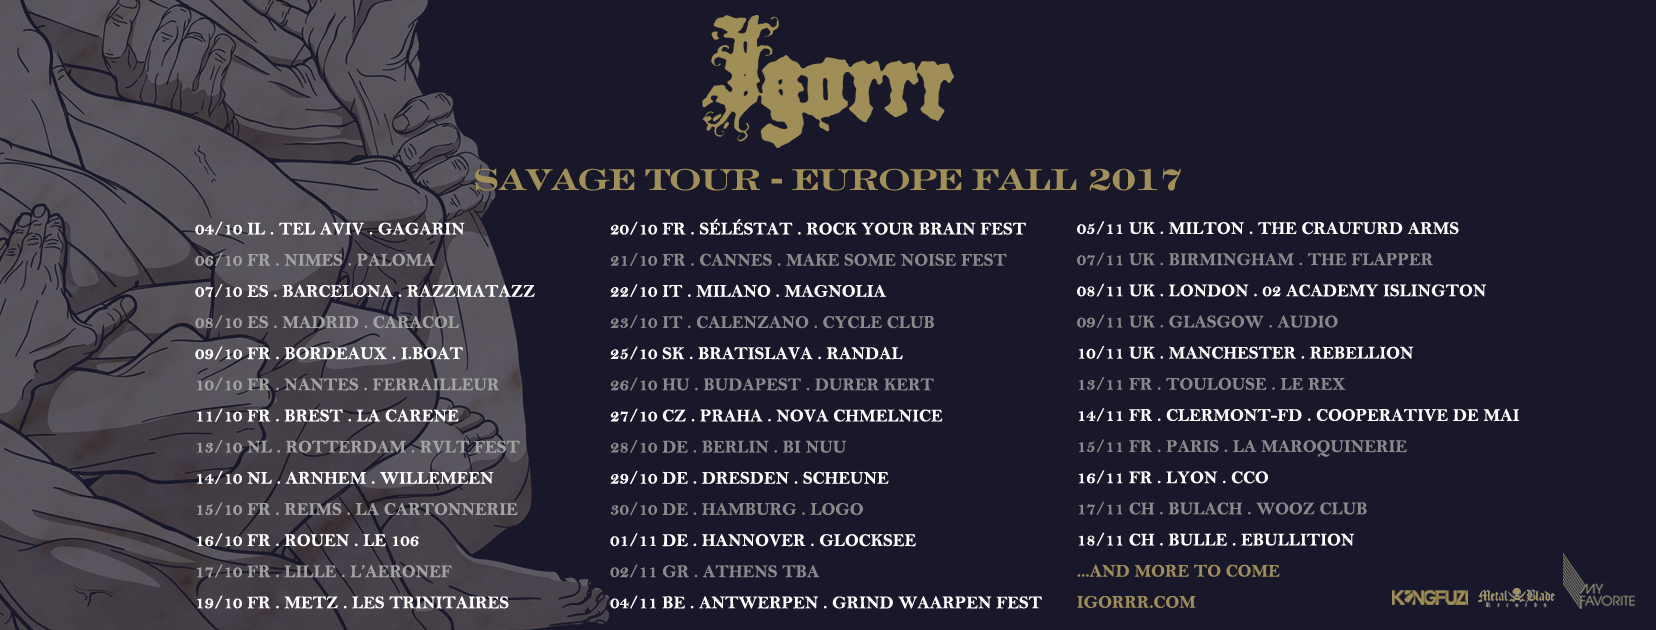 Igorrr - Tourplan